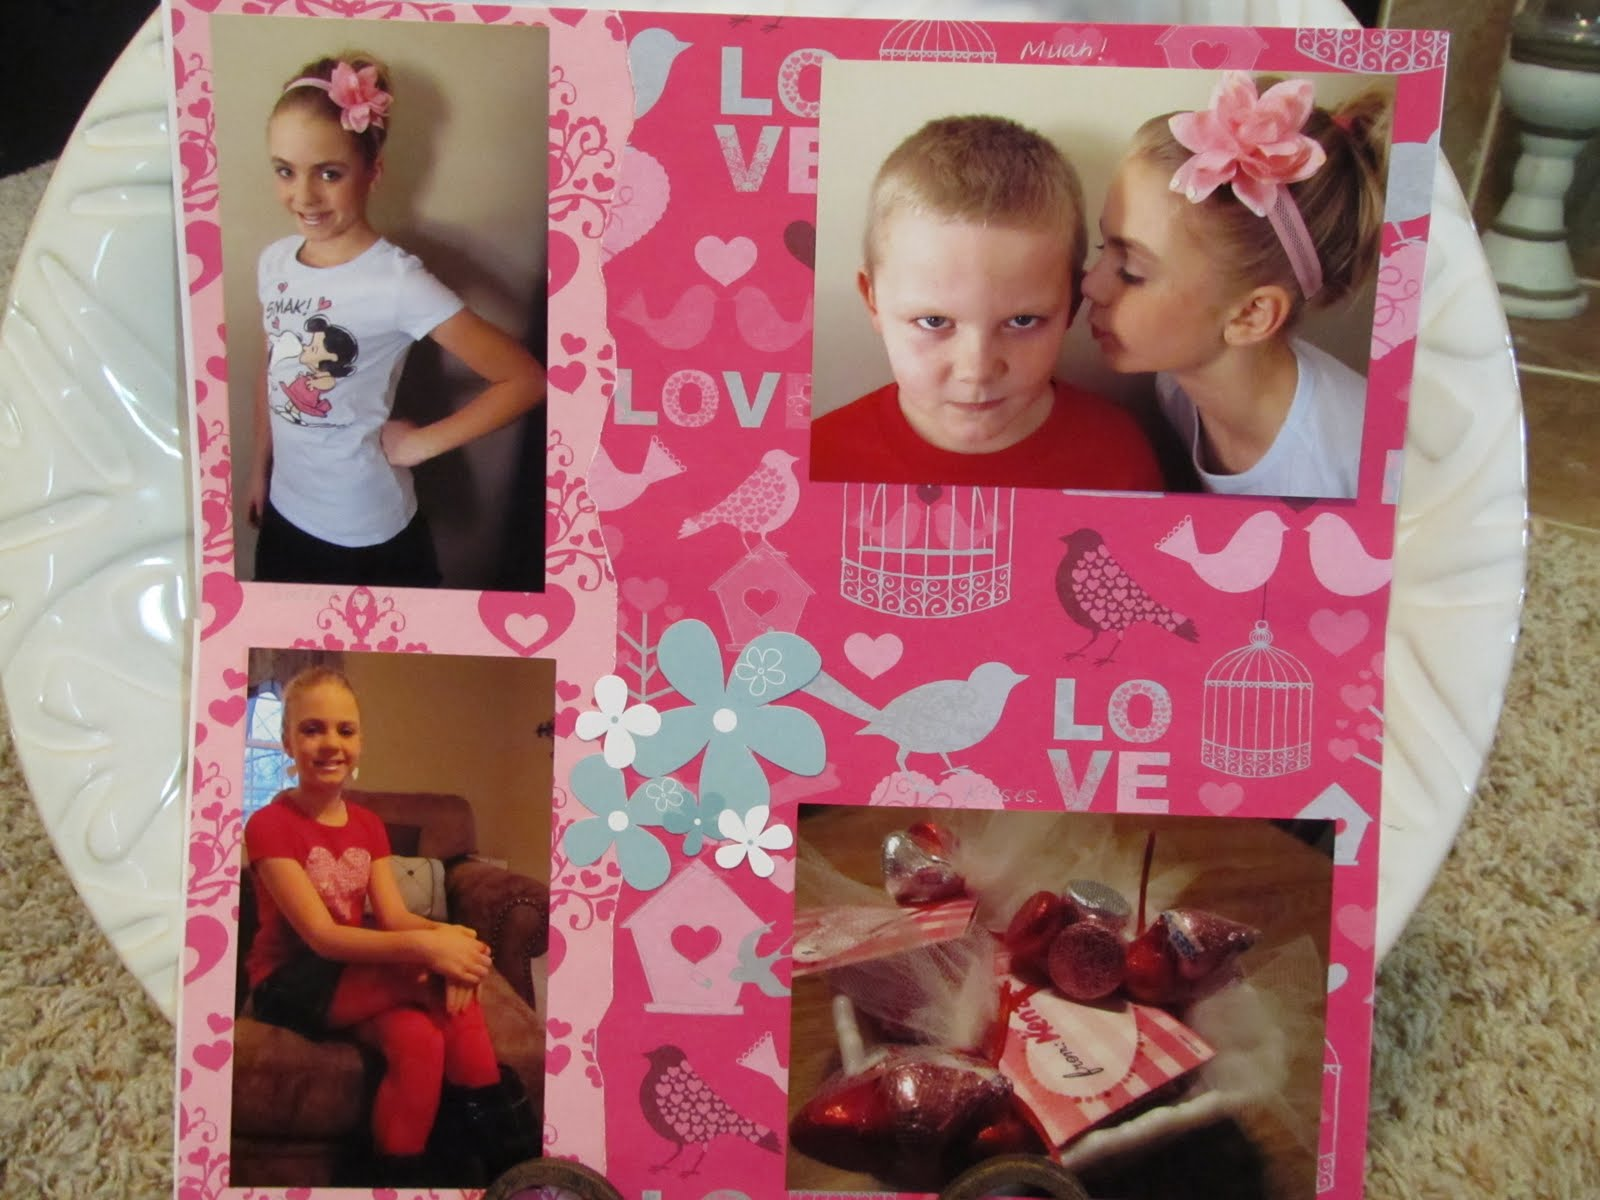 Justin bieber scrapbook ideas - Part Of The 2 Page Layout I Love Holidays One Day Of Holiday Themed Clothing Is Not Enough For Me So I Try To Dress My Kids In At Least A